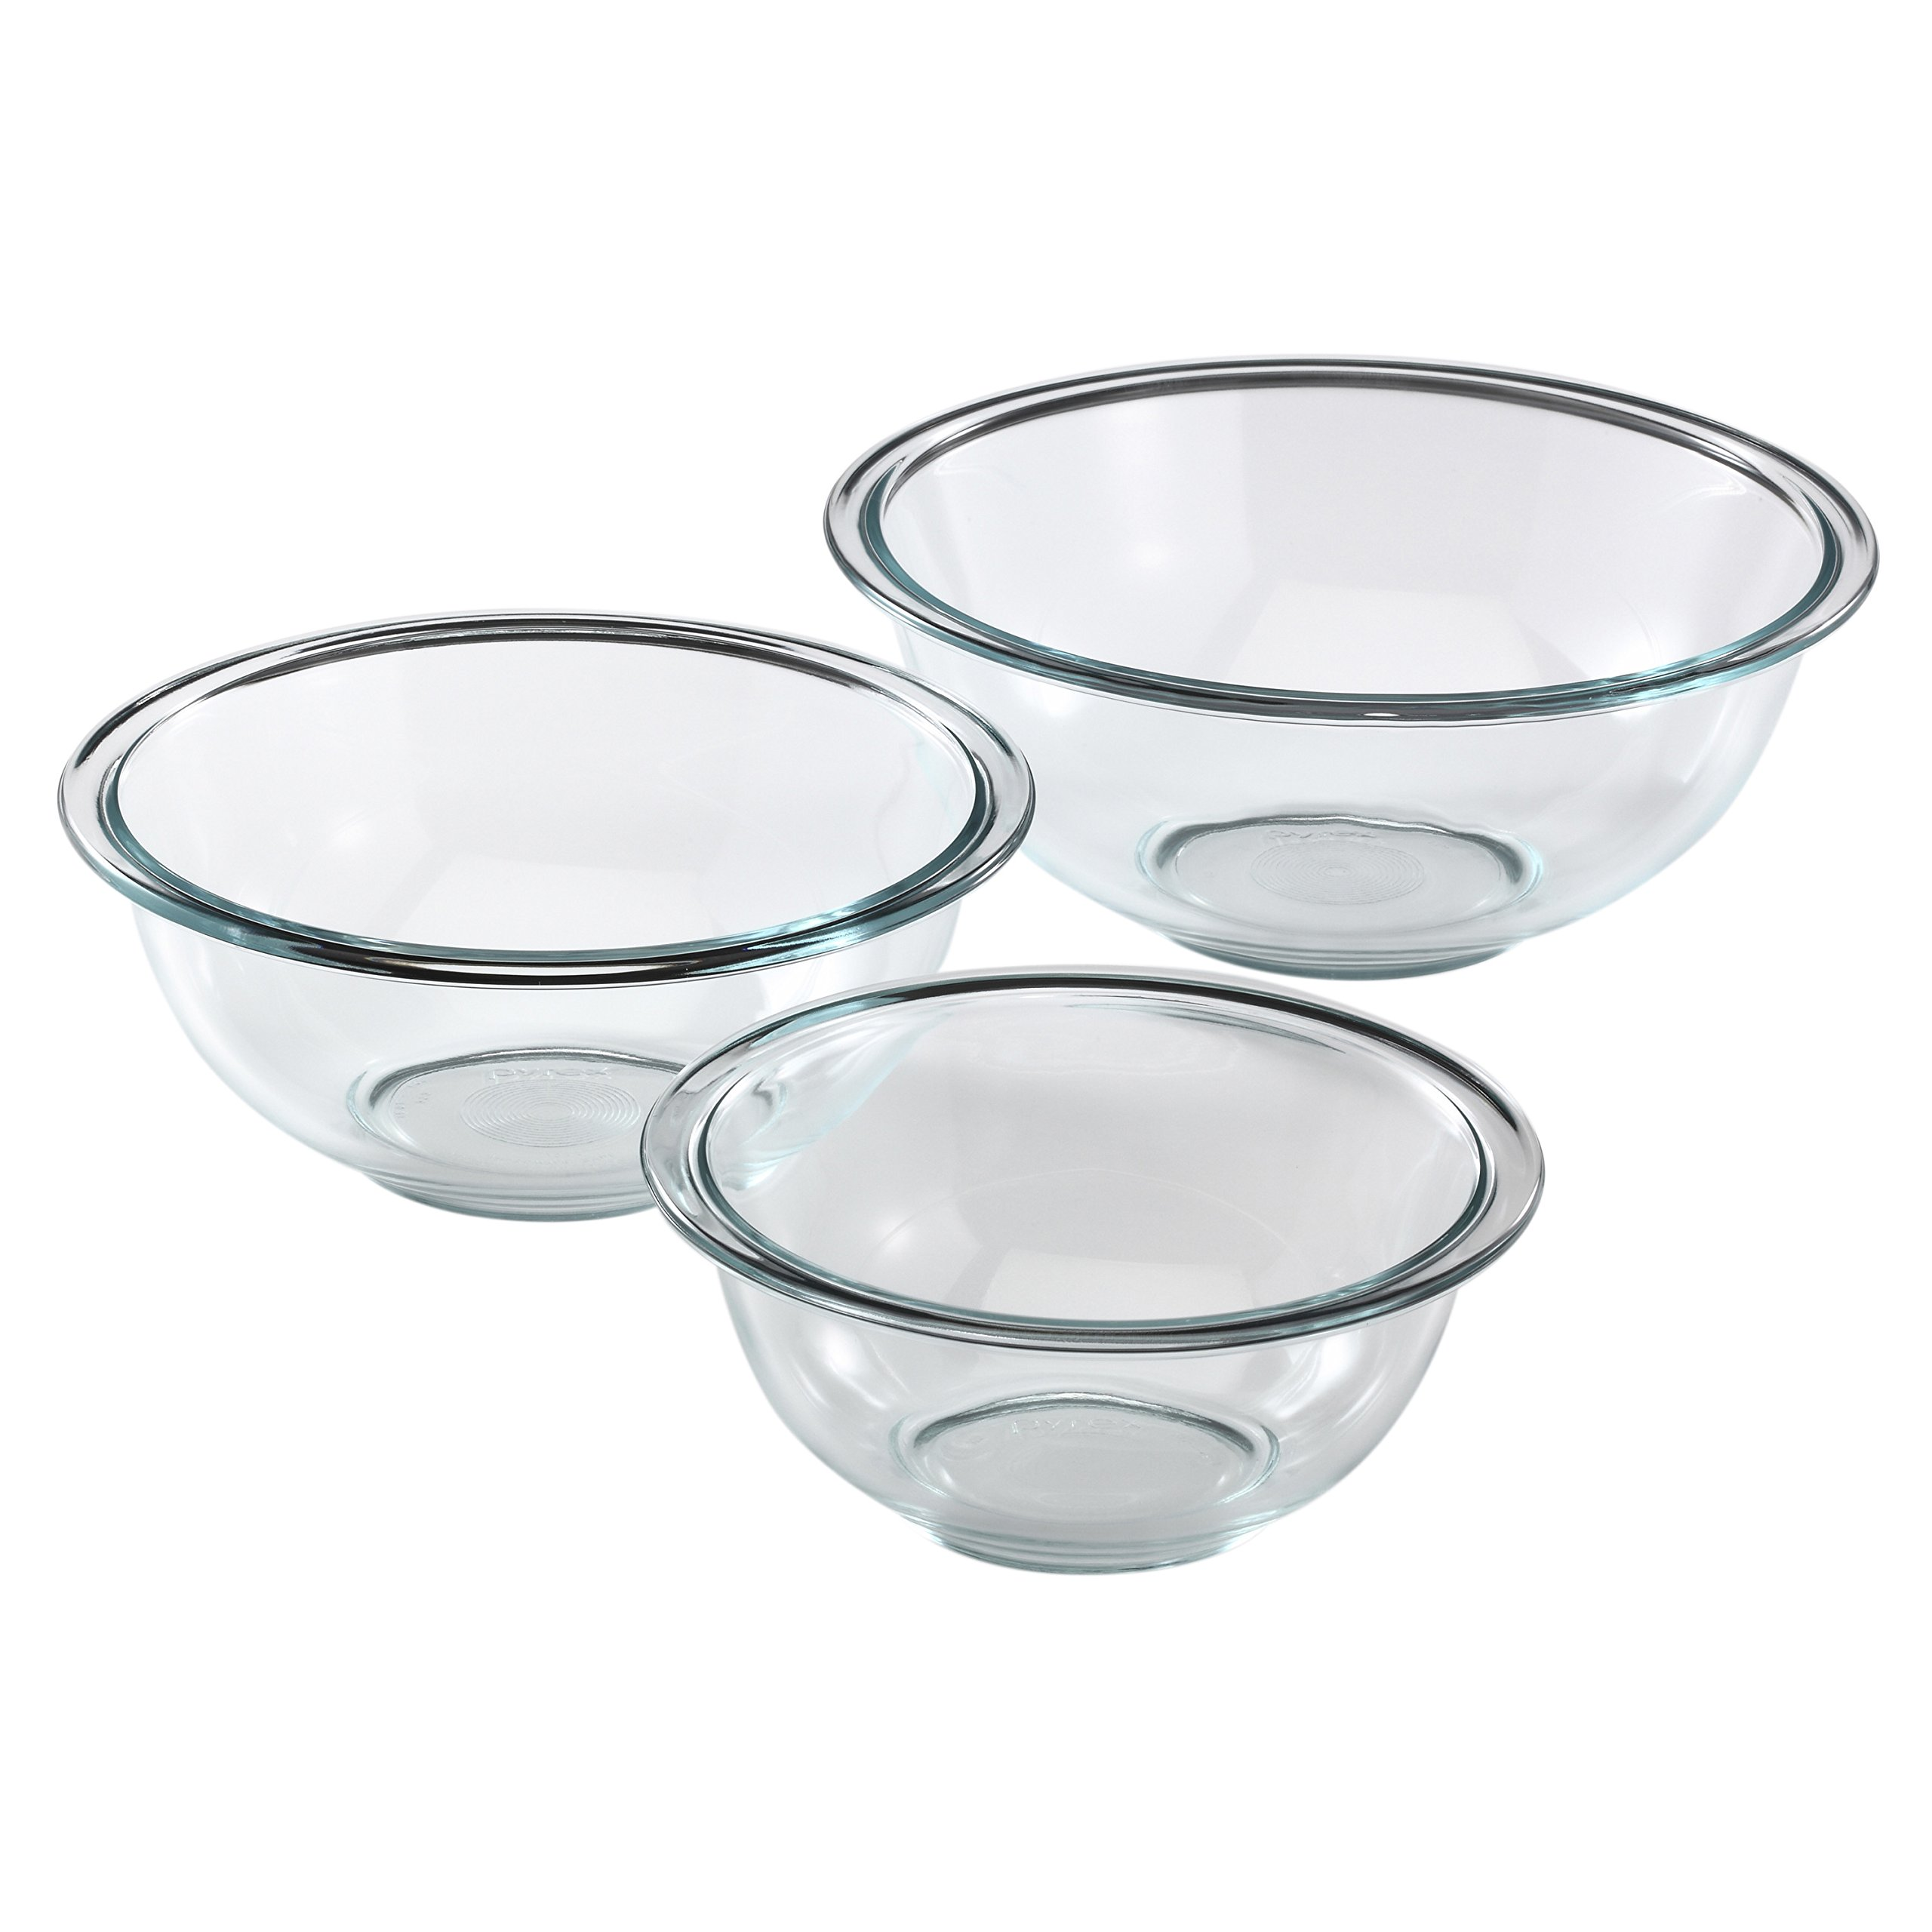 Pyrex Glass Mixing Bowl Set (3-Piece) by Pyrex (Image #1)